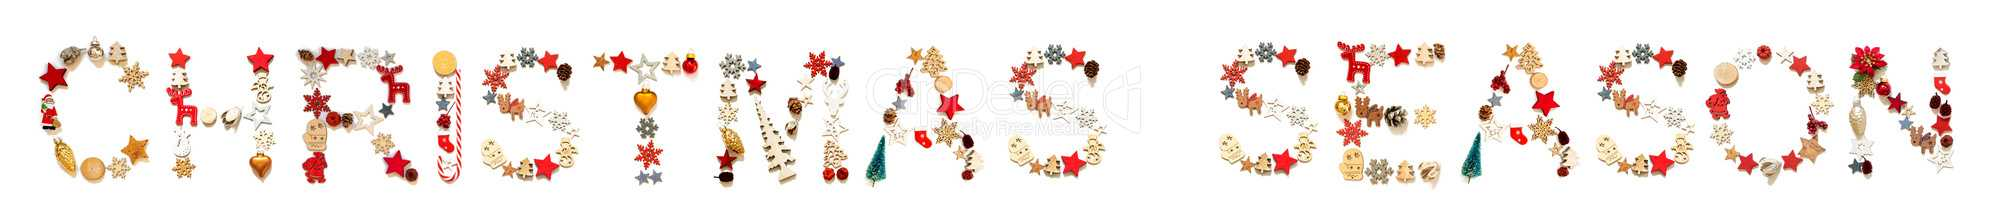 Colorful Christmas Decoration Letter Building Word Christmas Season